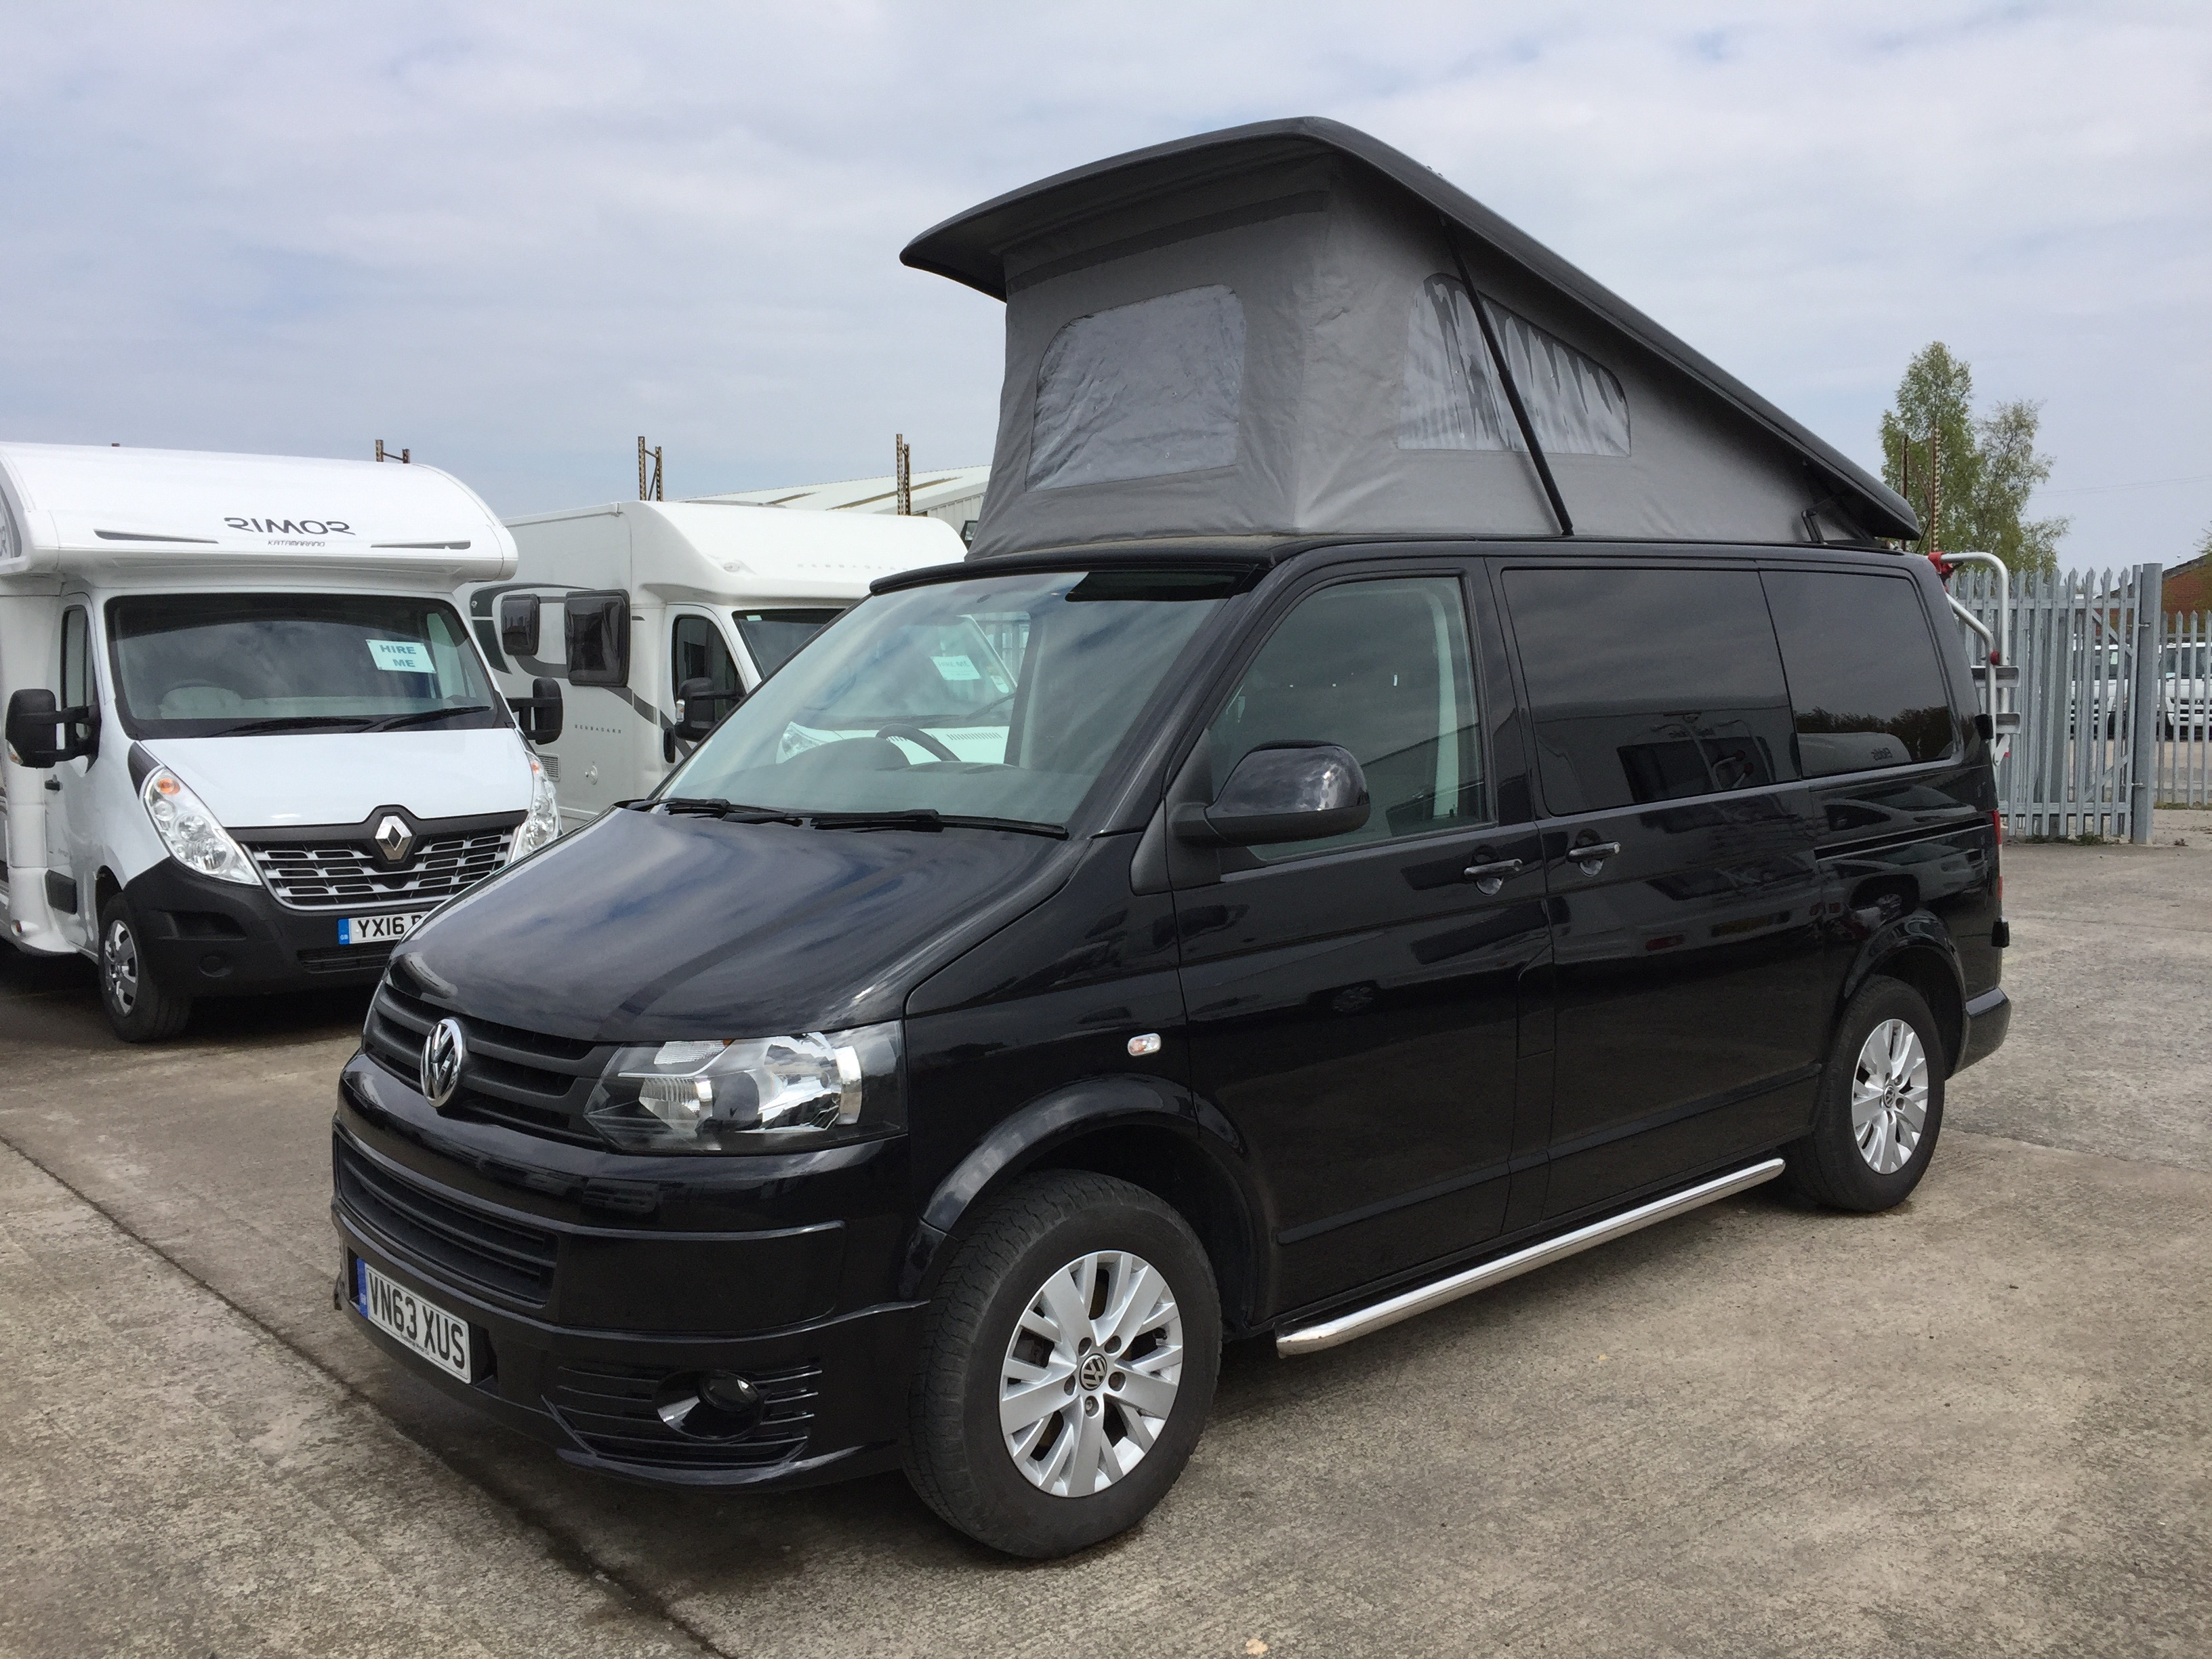 camper van holidays uk